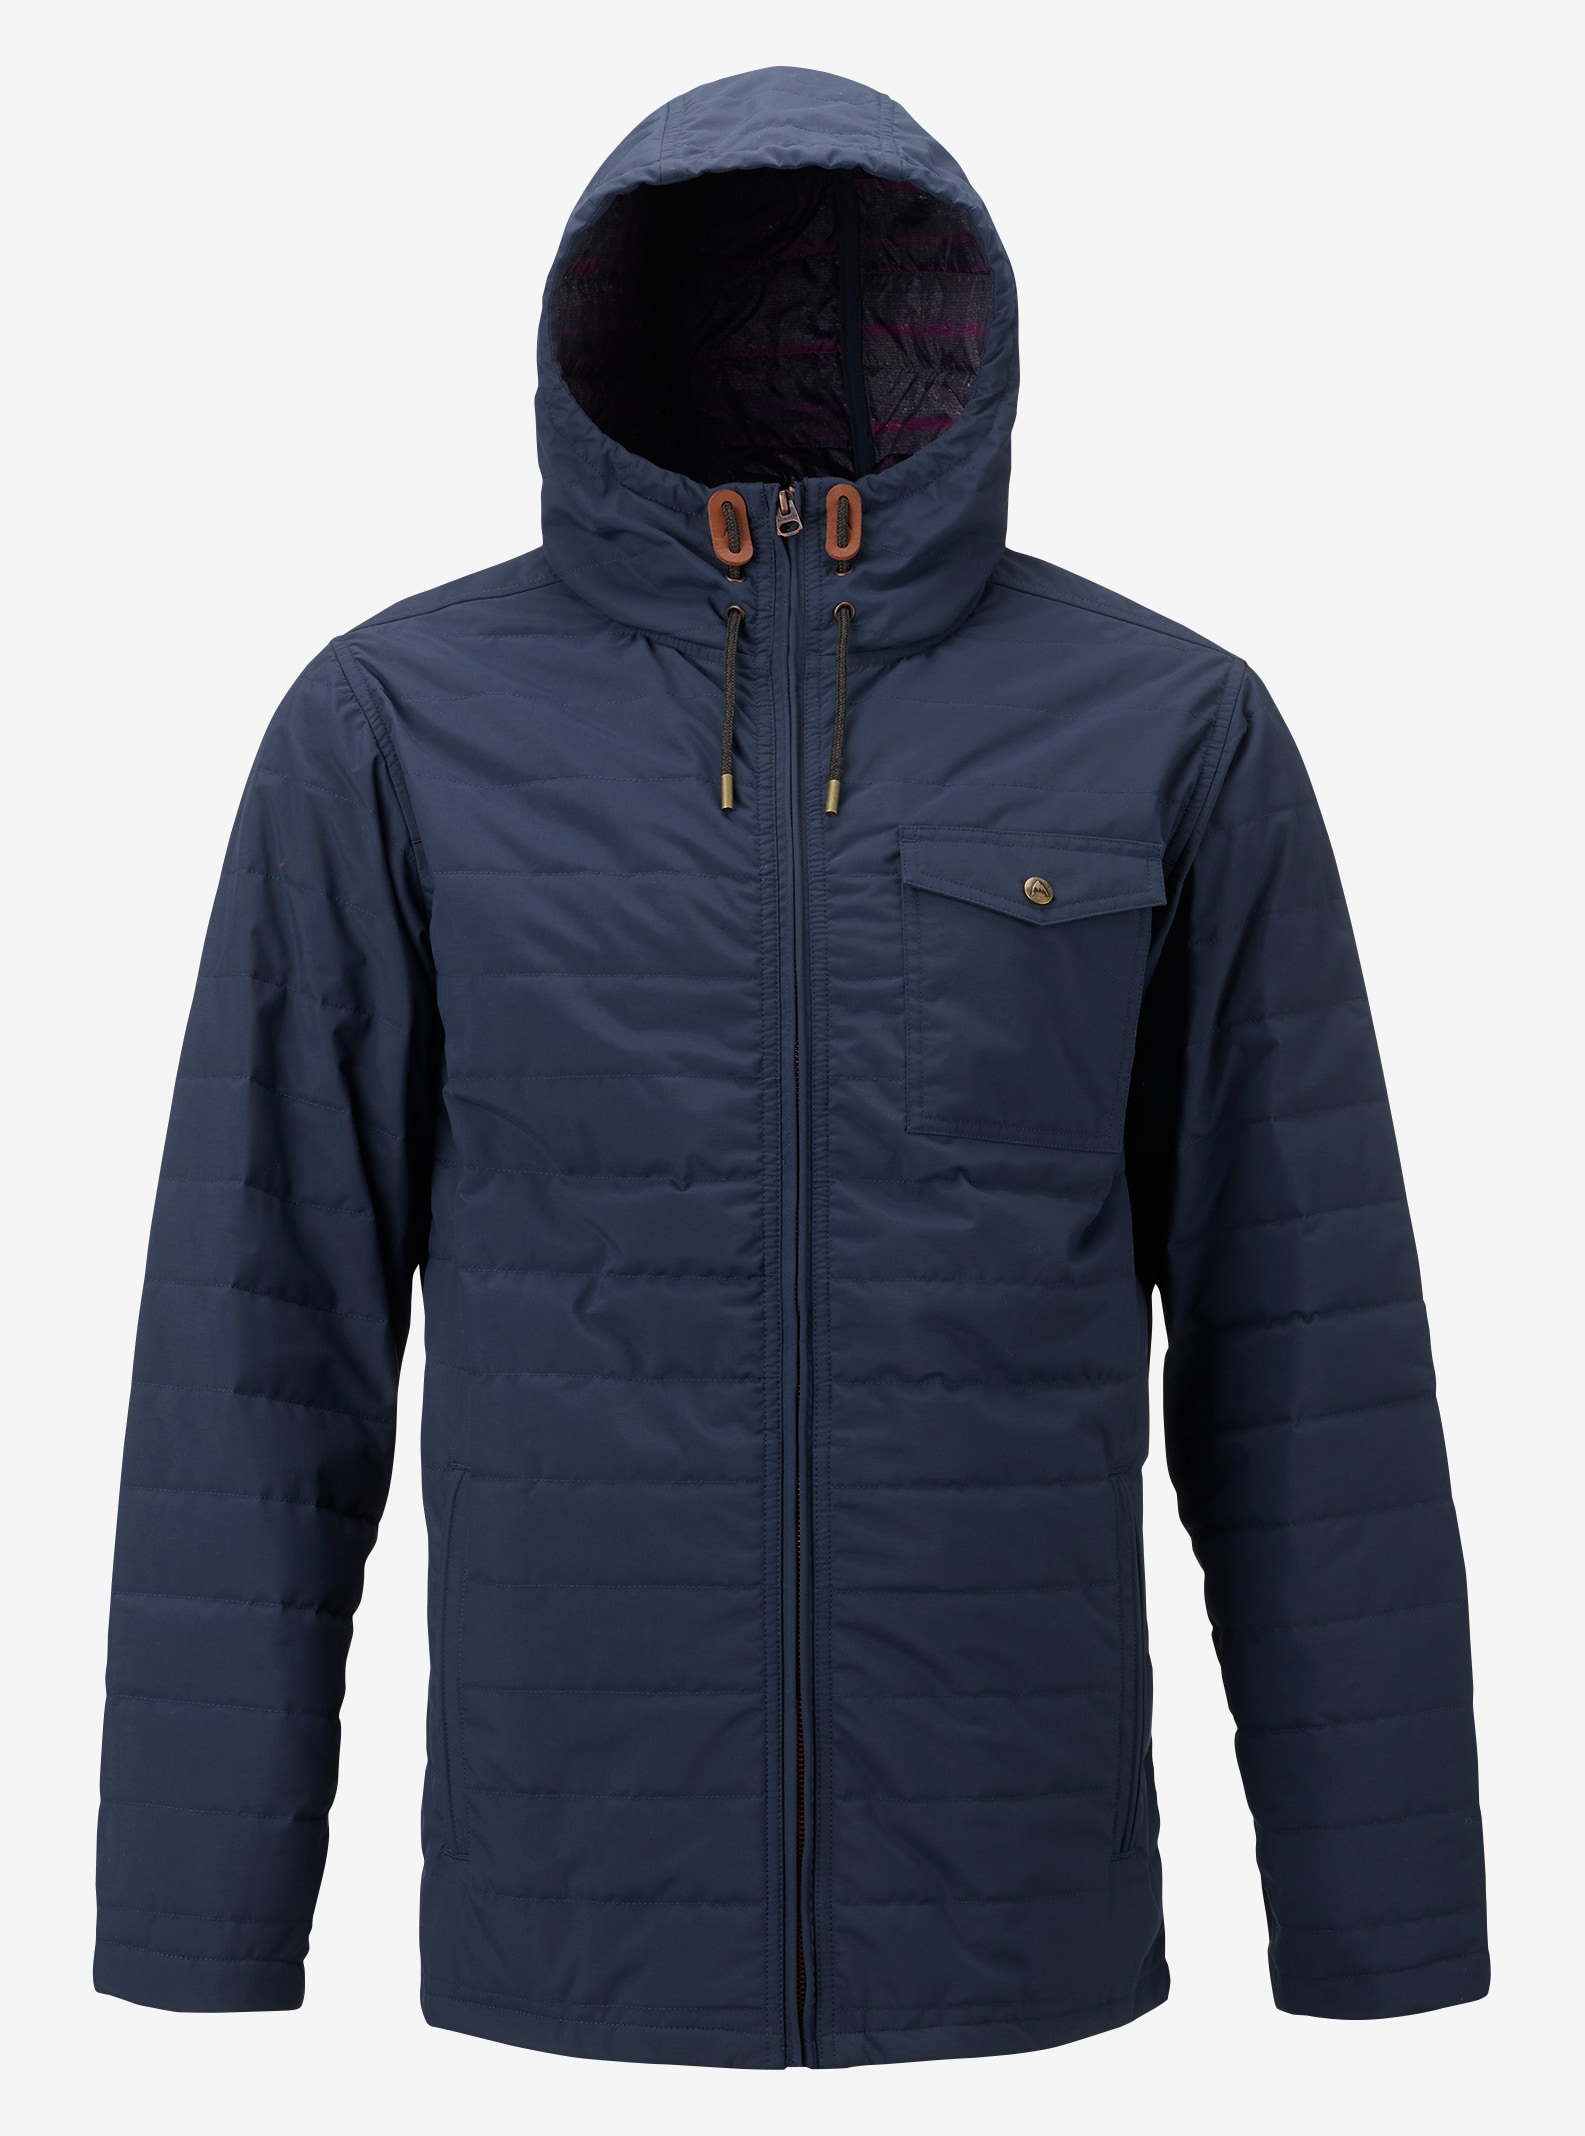 Men's Burton Sylus Jacket shown in Mood Indigo